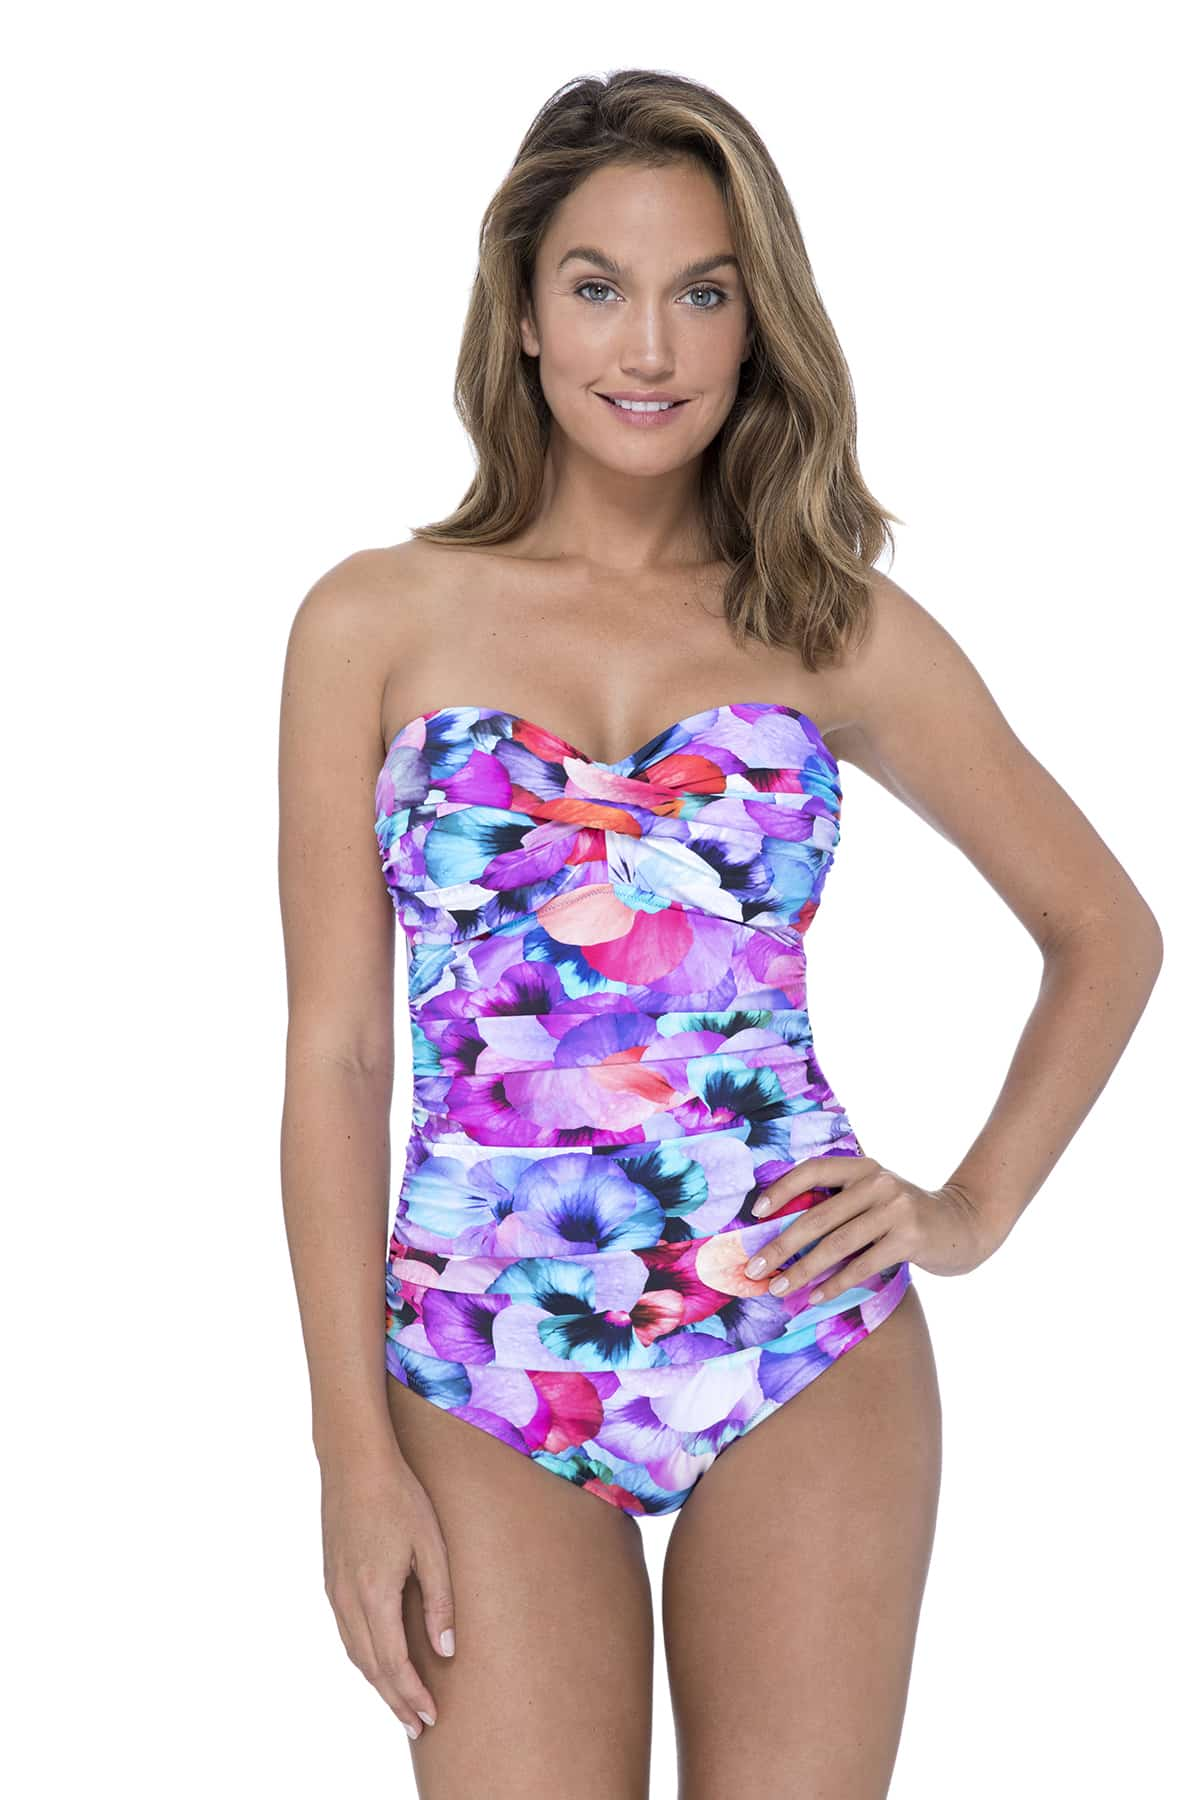 Gottex Profile Pocket Full Of Posies Swimsuit in Multi 12